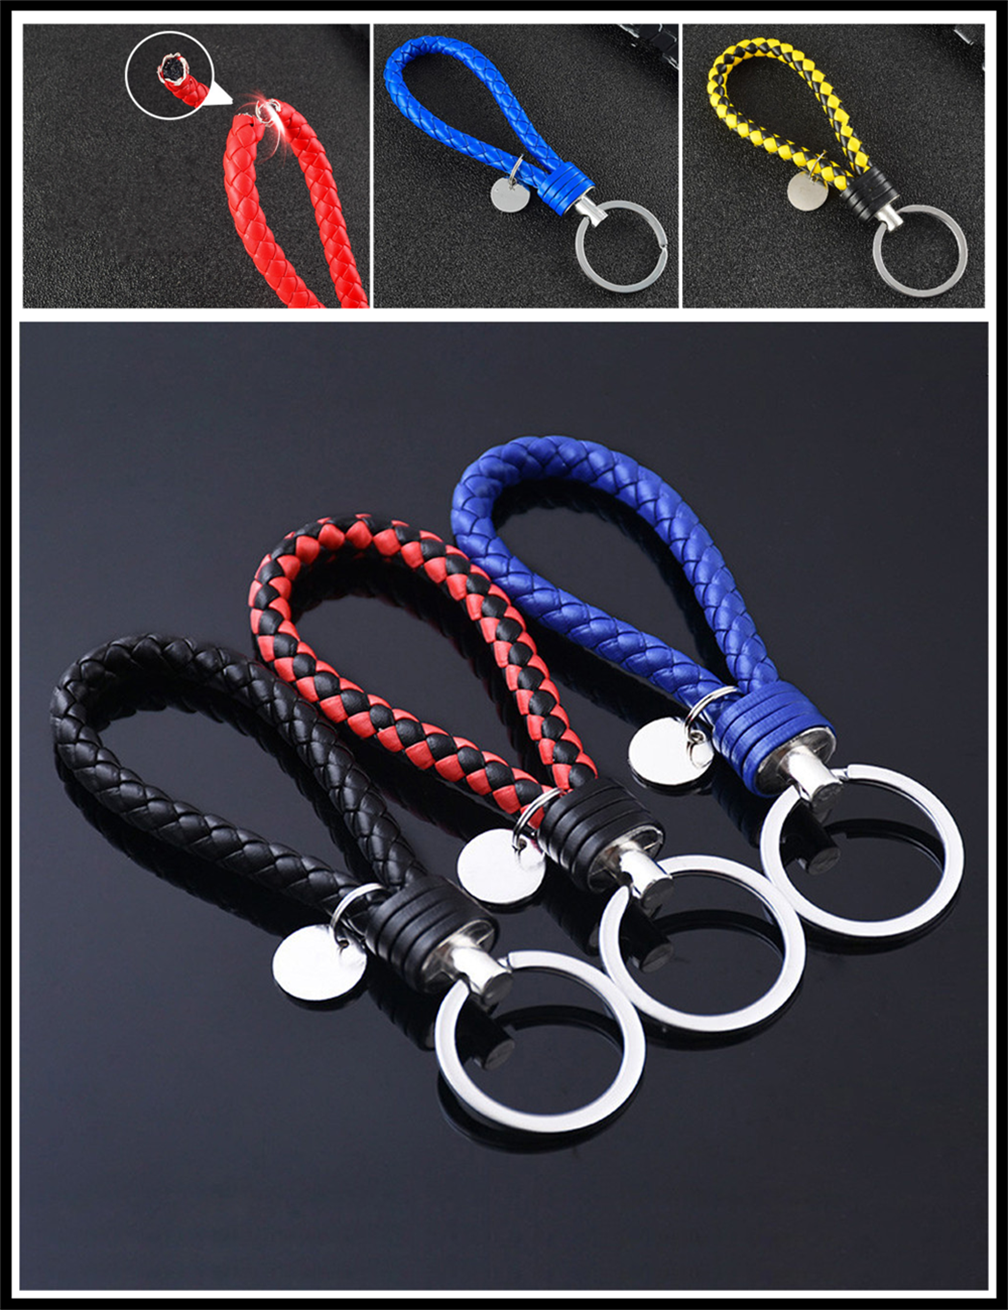 Universal motorcycle Car accessories woven leather rope key ring for Nissan NV200 Nuvu NV2500 Forum Denki <font><b>350Z</b></font> Zaroot image